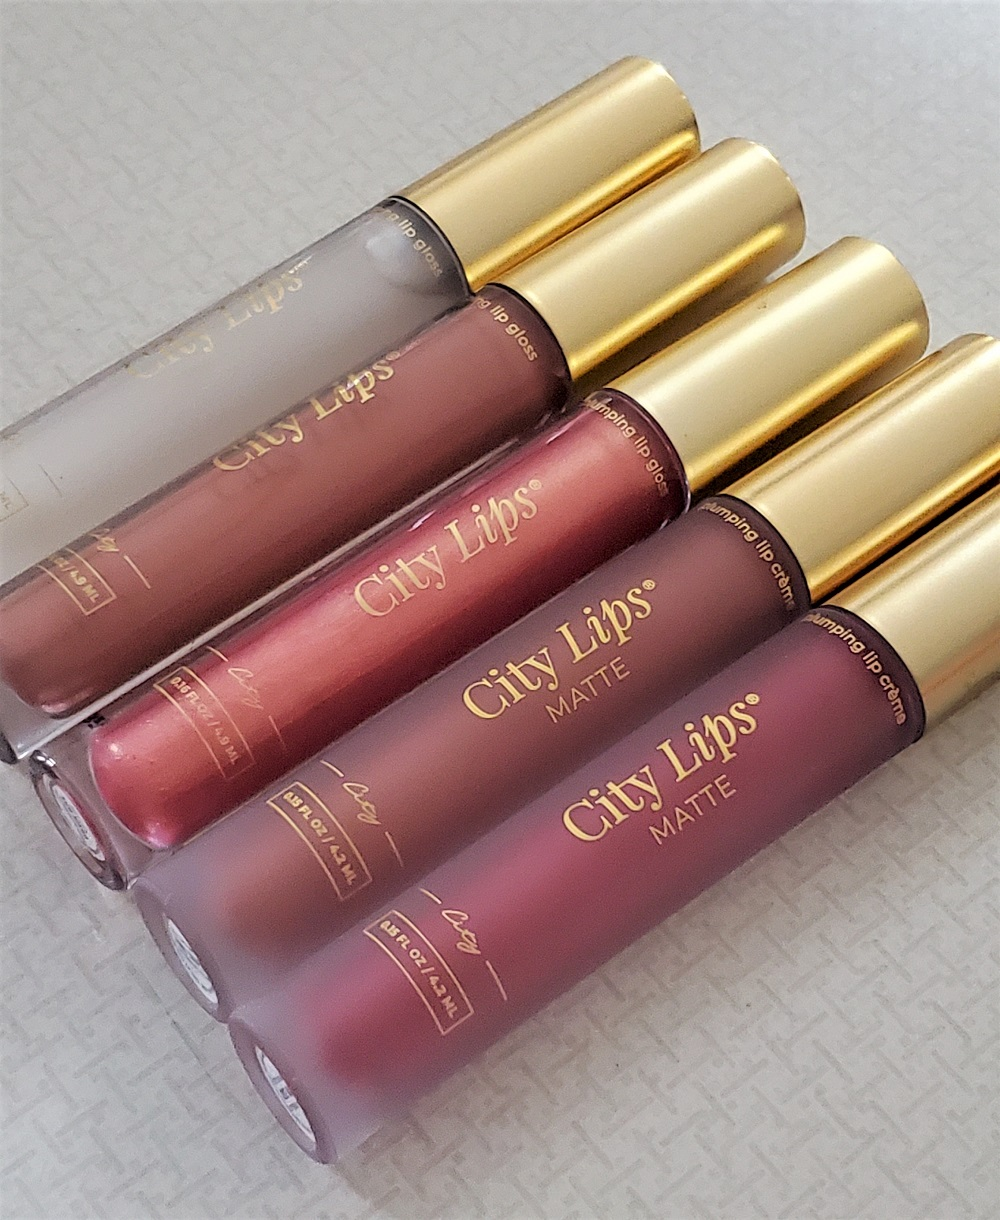 City Lips Glosses and Matte Creme Lip Colors